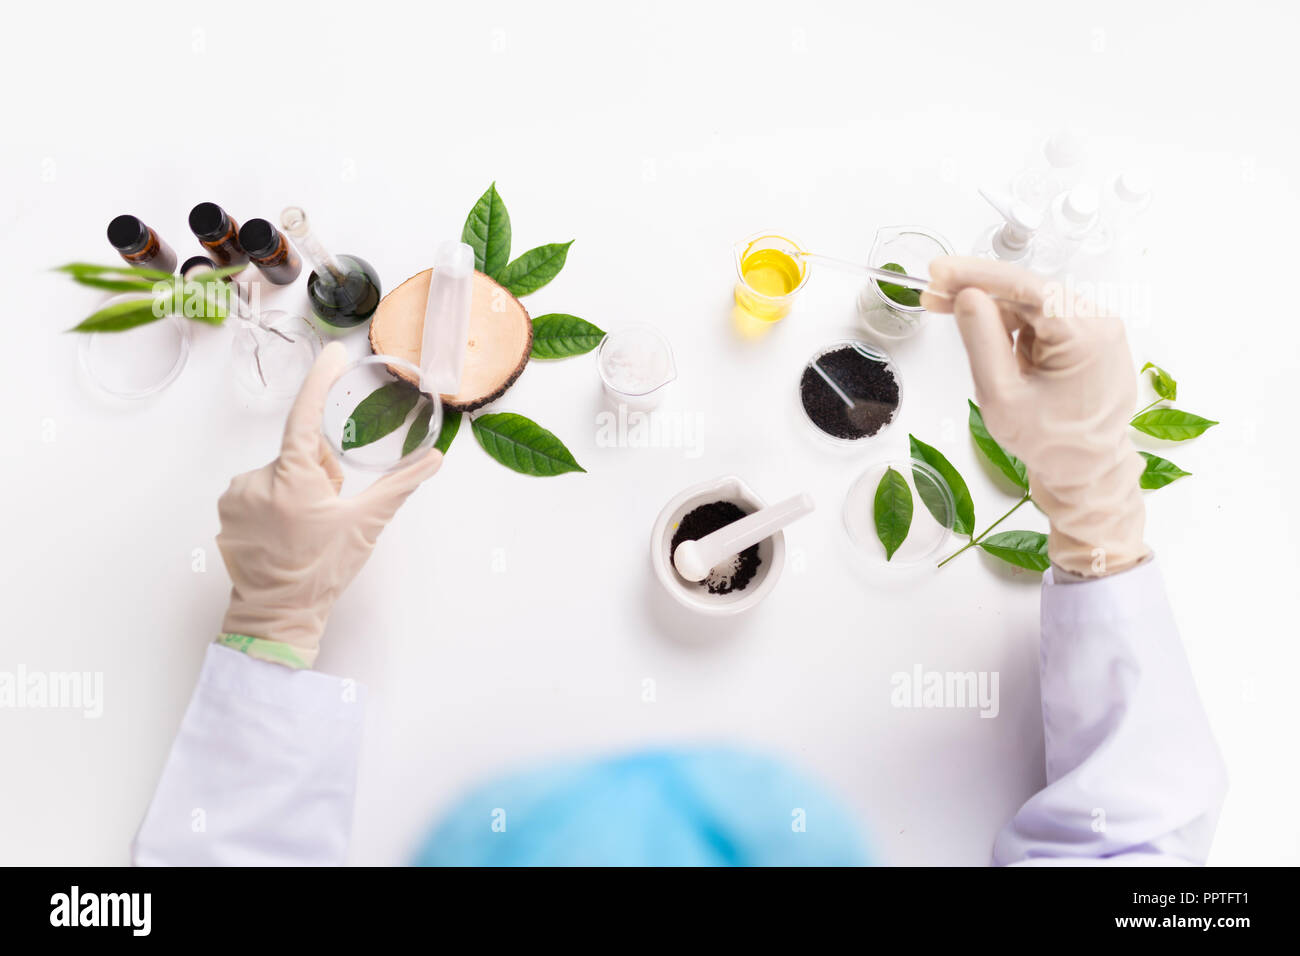 the scientist,dermatologist testing the organic natural cosmetic